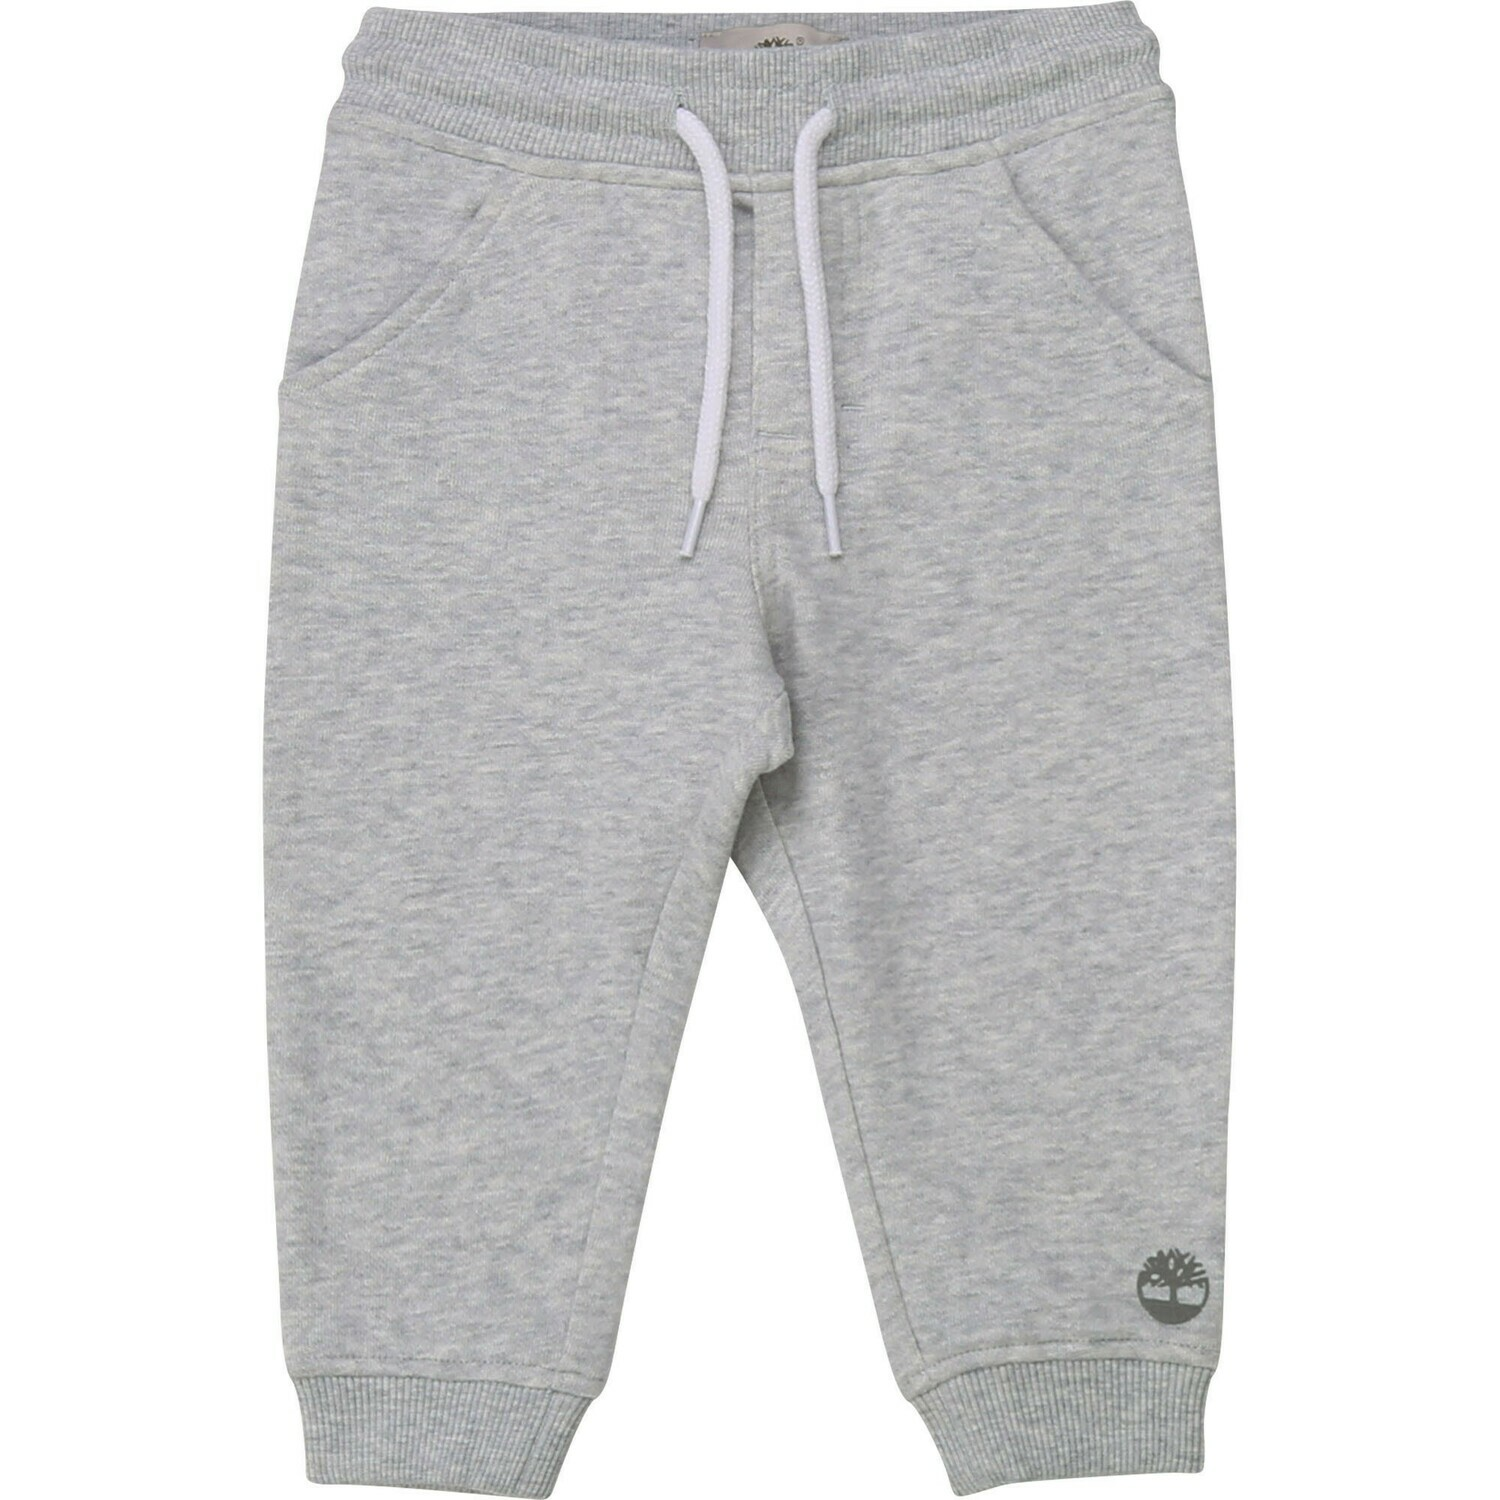 Timberland Grey Boys Jogging Pull up Pants